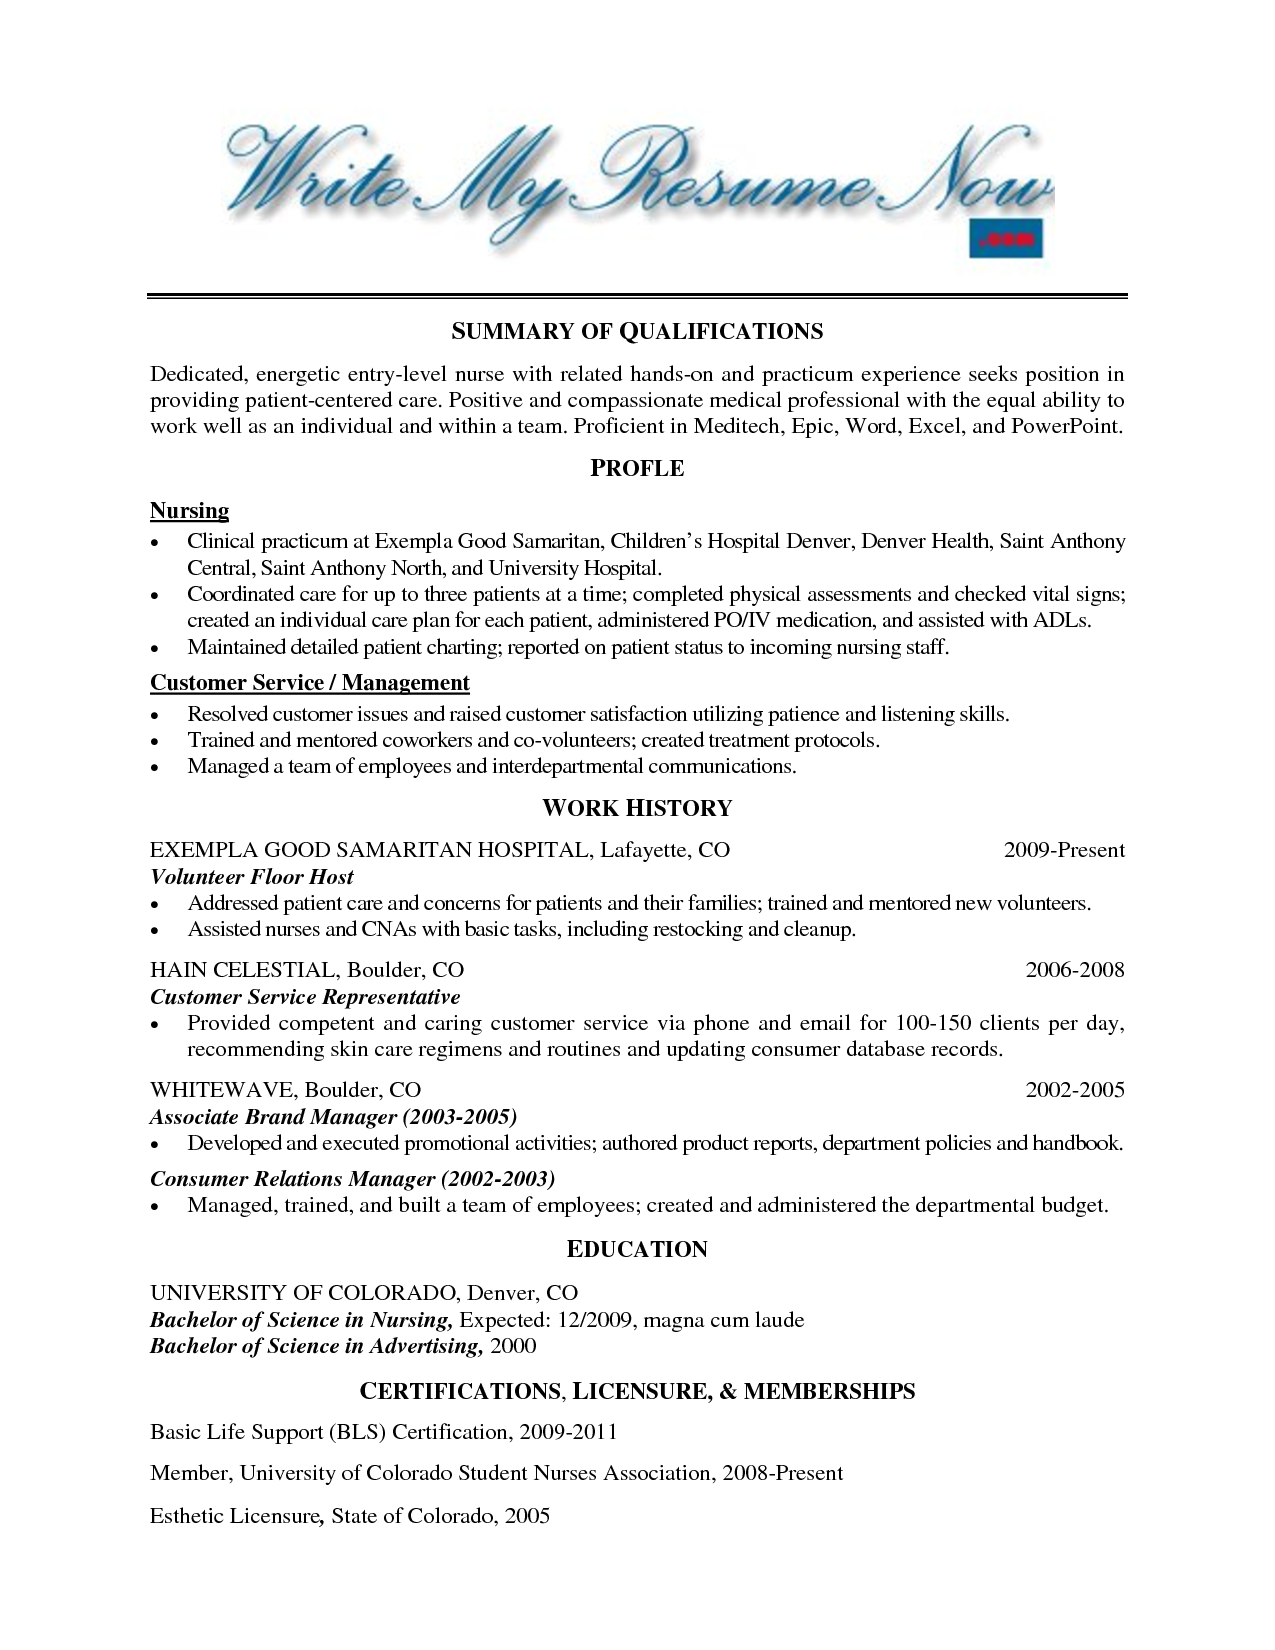 Hospital Volunteer Resume Example Http Www Resumecareer Info